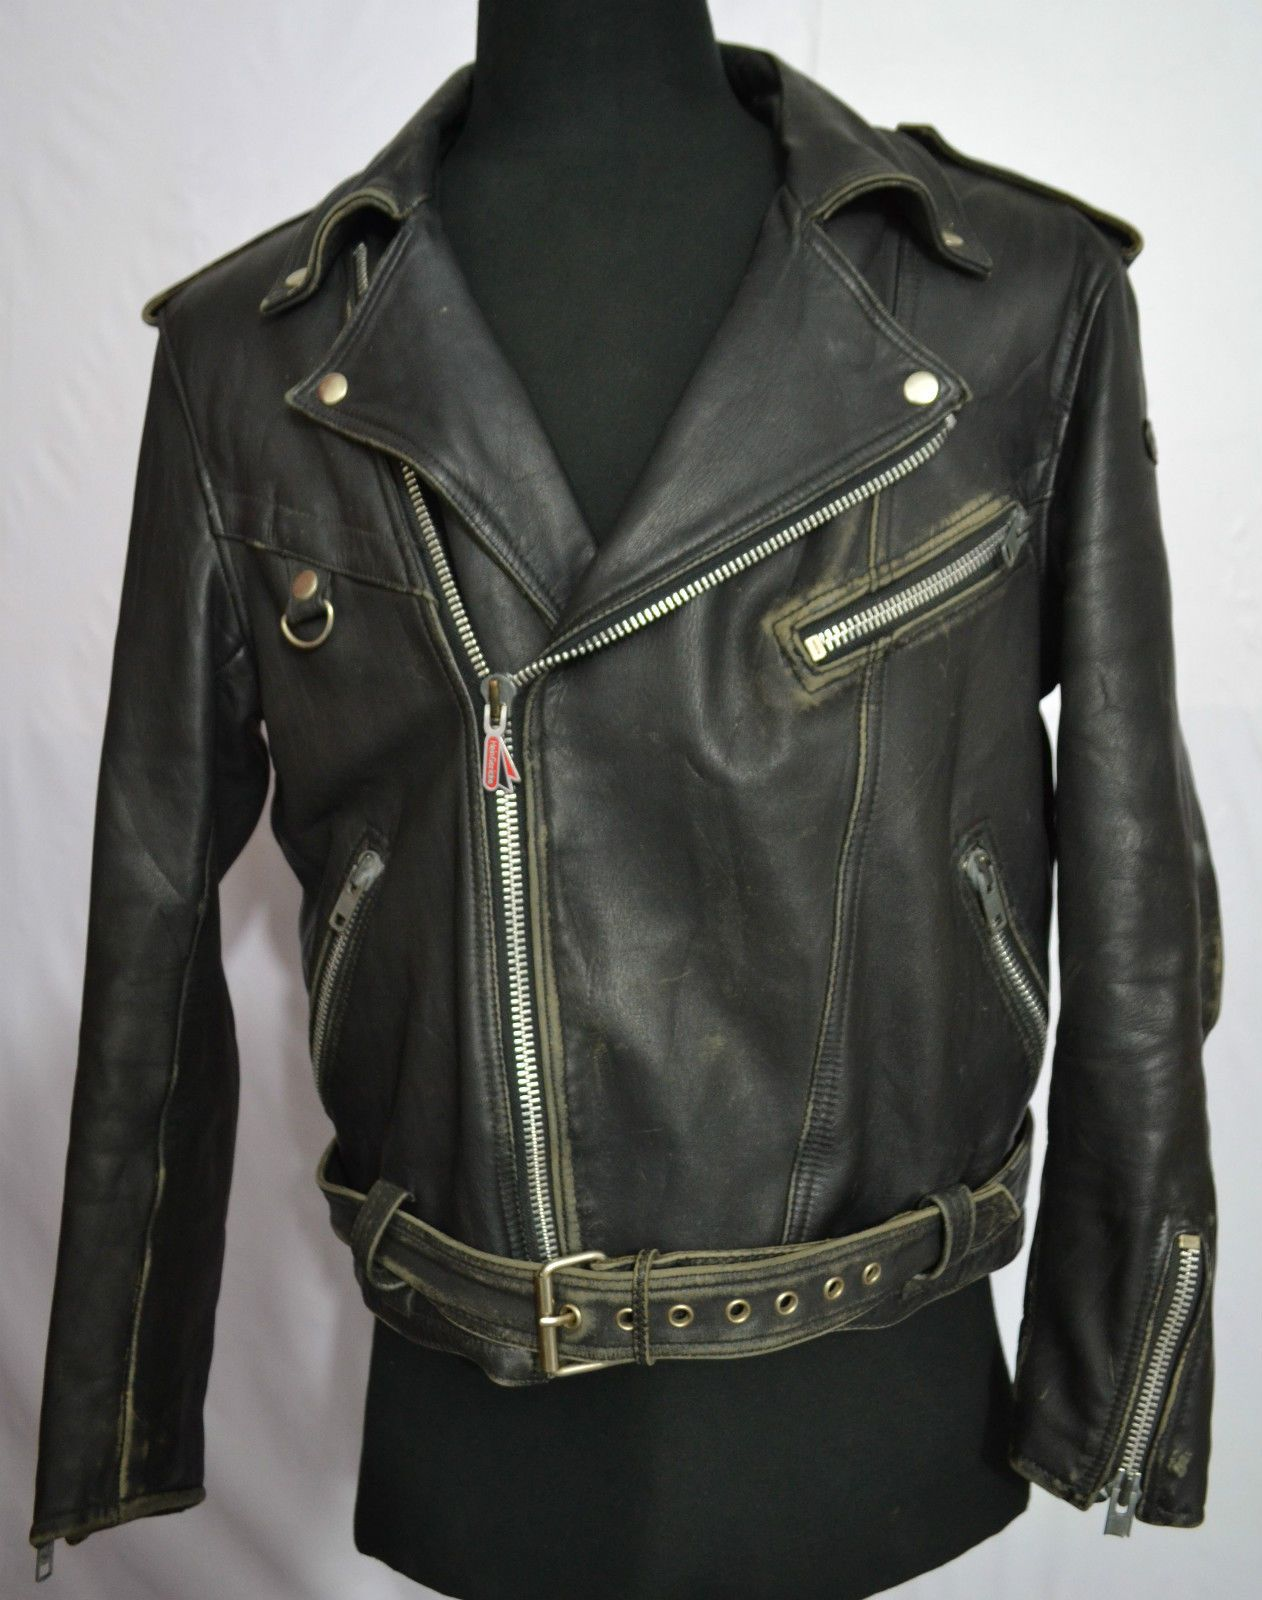 Hein Gericke Men's Motorcycle Thick Leather Jacket